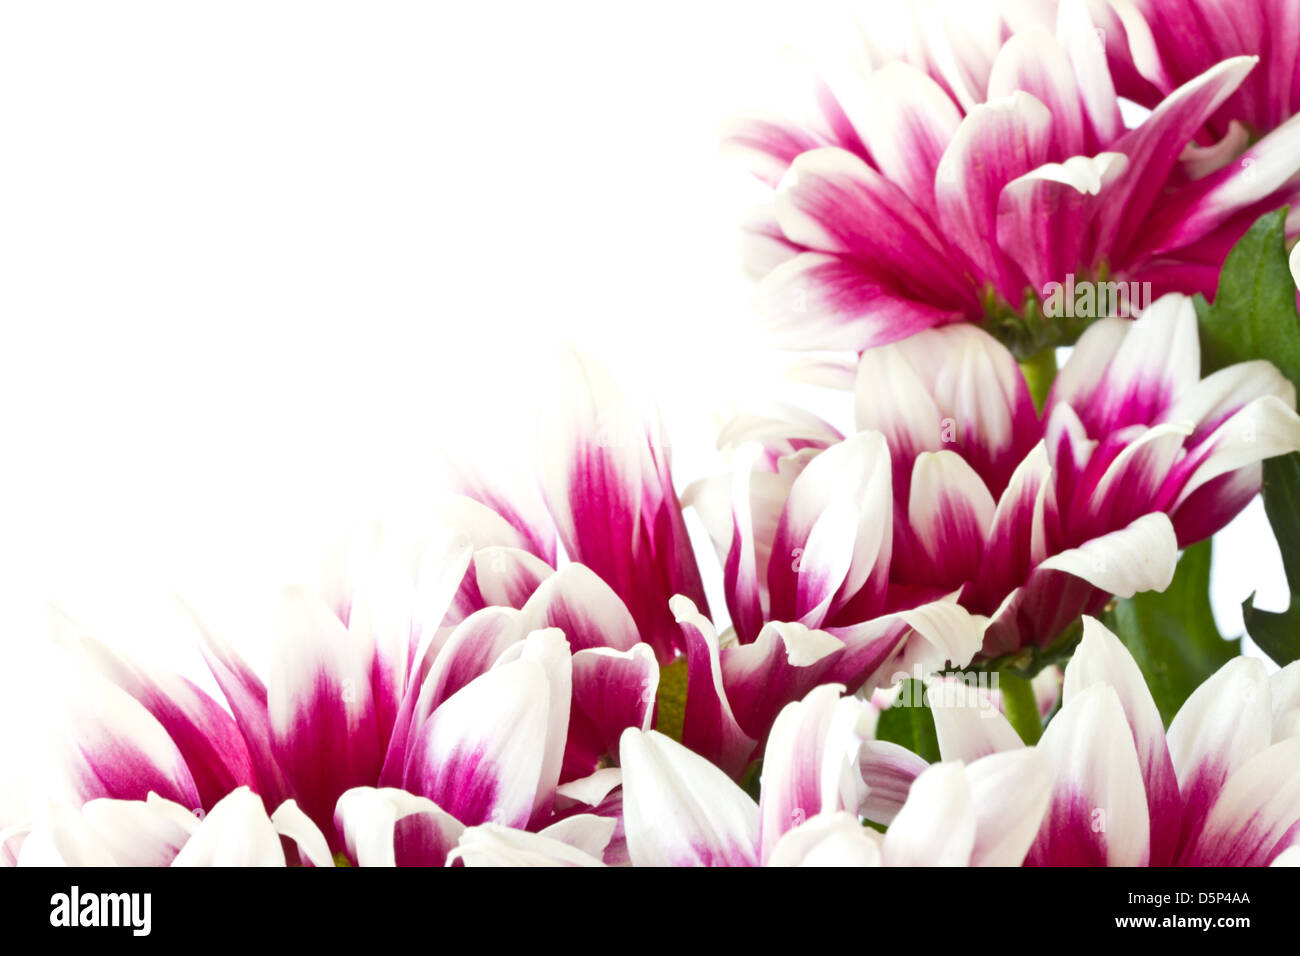 Beautiful multi colored flowers on a white background stock photo beautiful multi colored flowers on a white background mightylinksfo